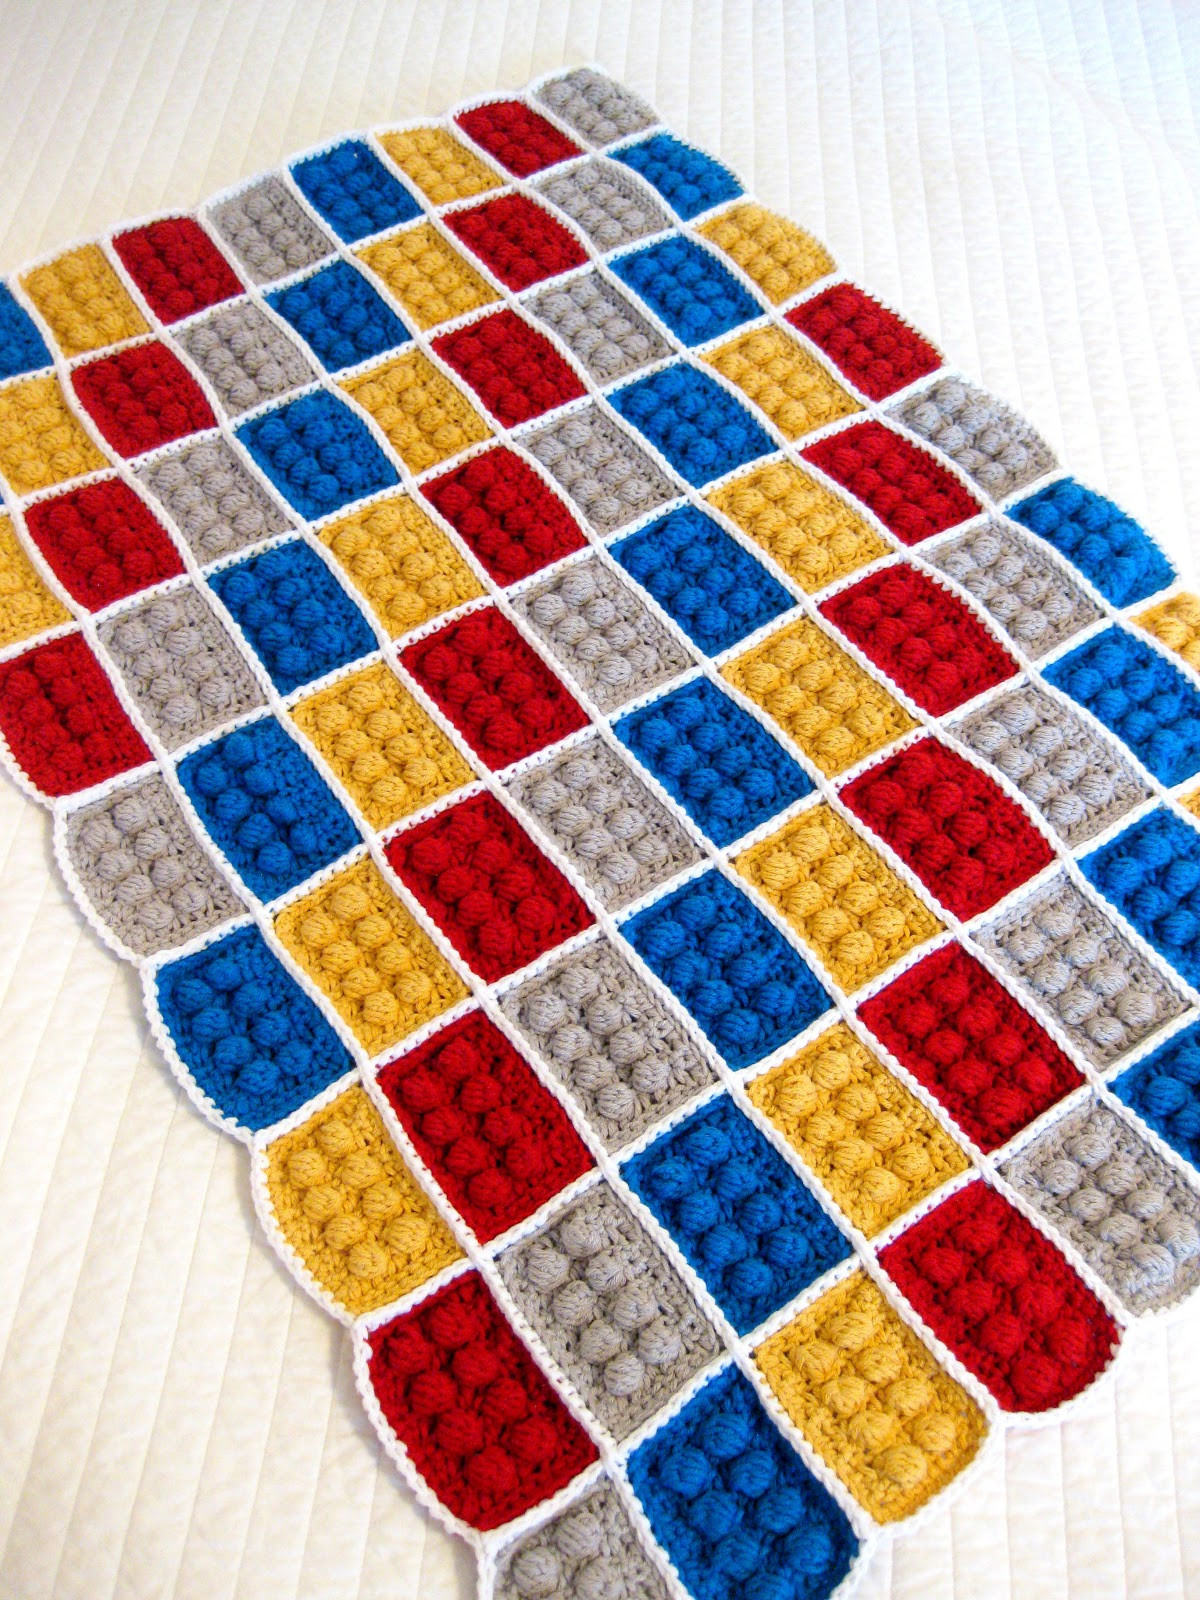 New All Things Bright and Beautiful Crochet Lego Blanket Tutorial Cool Crochet Patterns Of Awesome 45 Ideas Cool Crochet Patterns